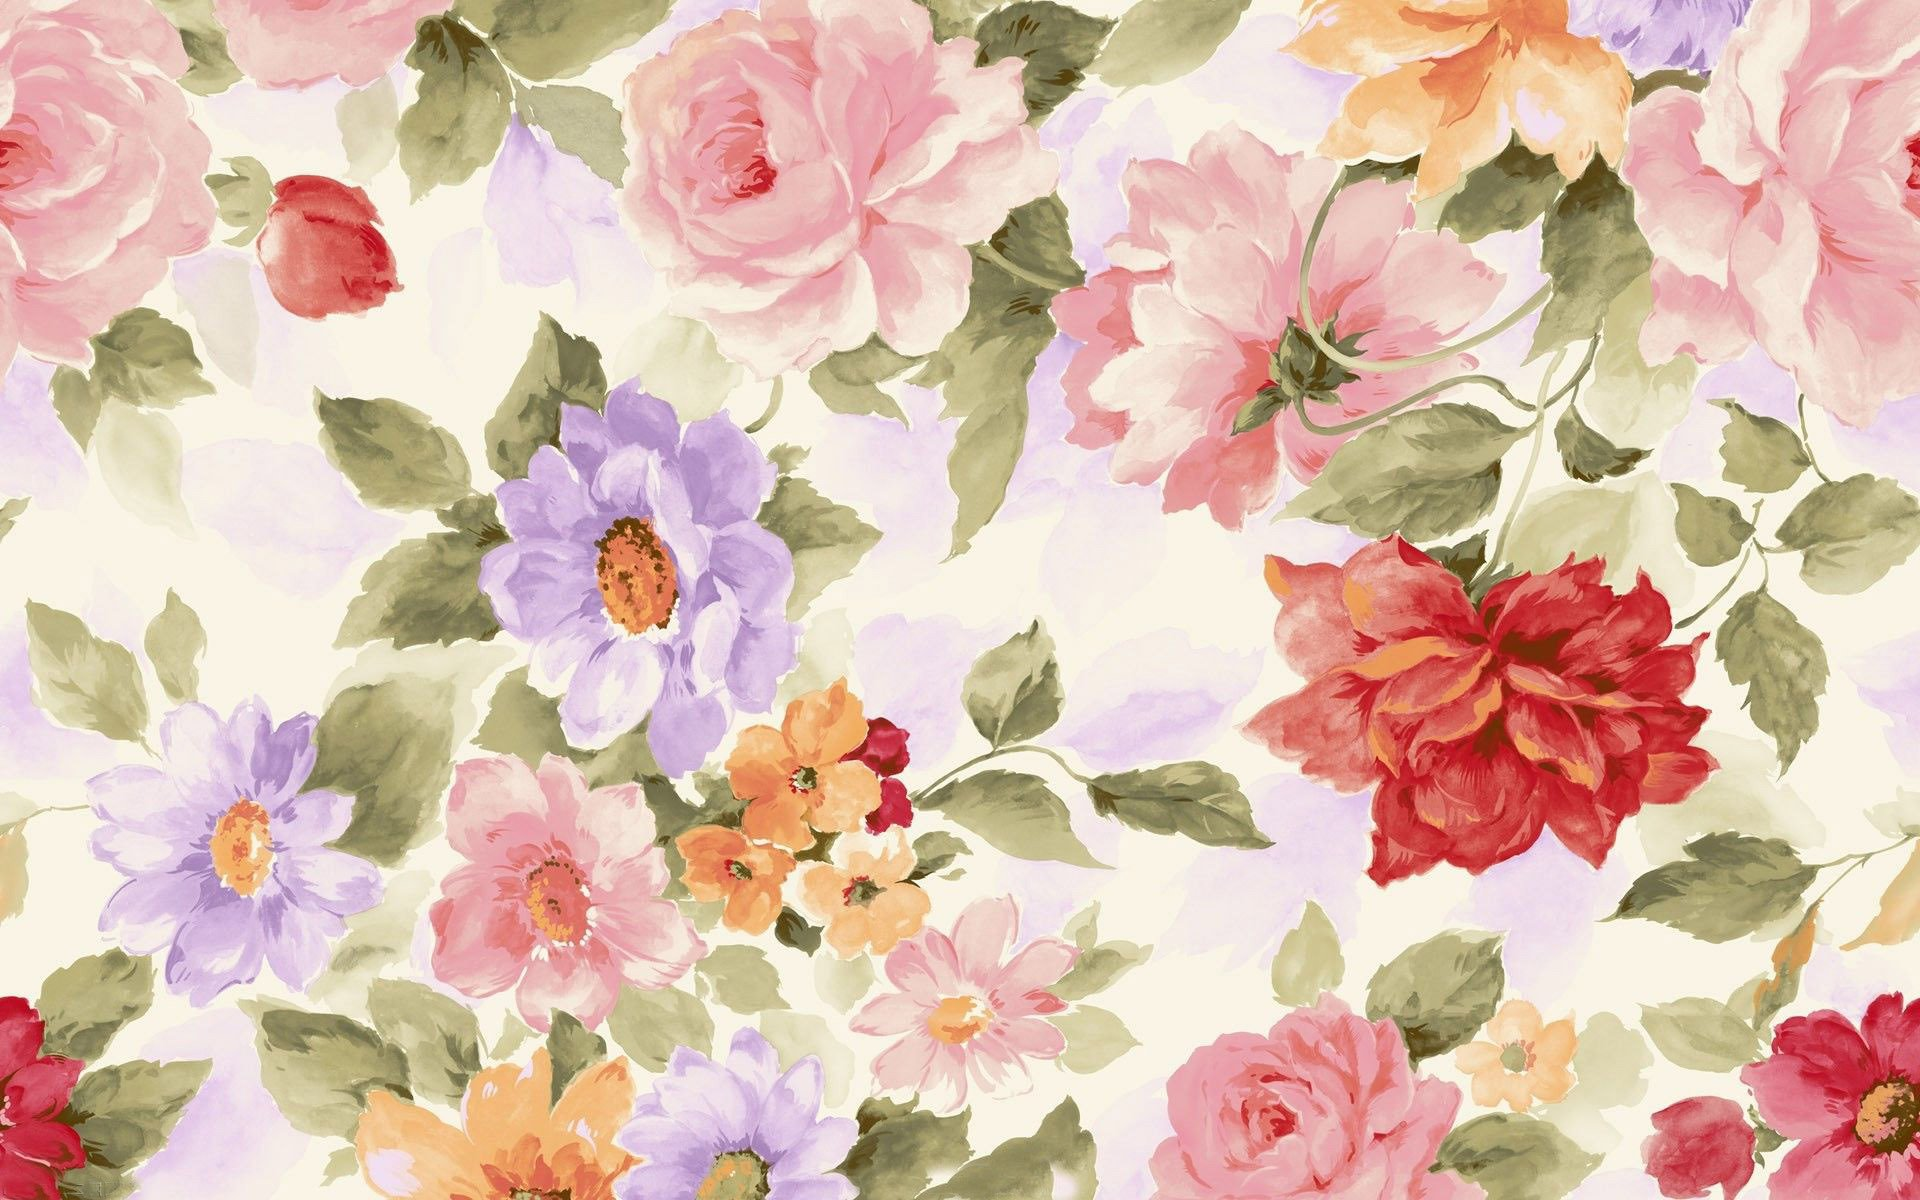 Floral Paintings Images